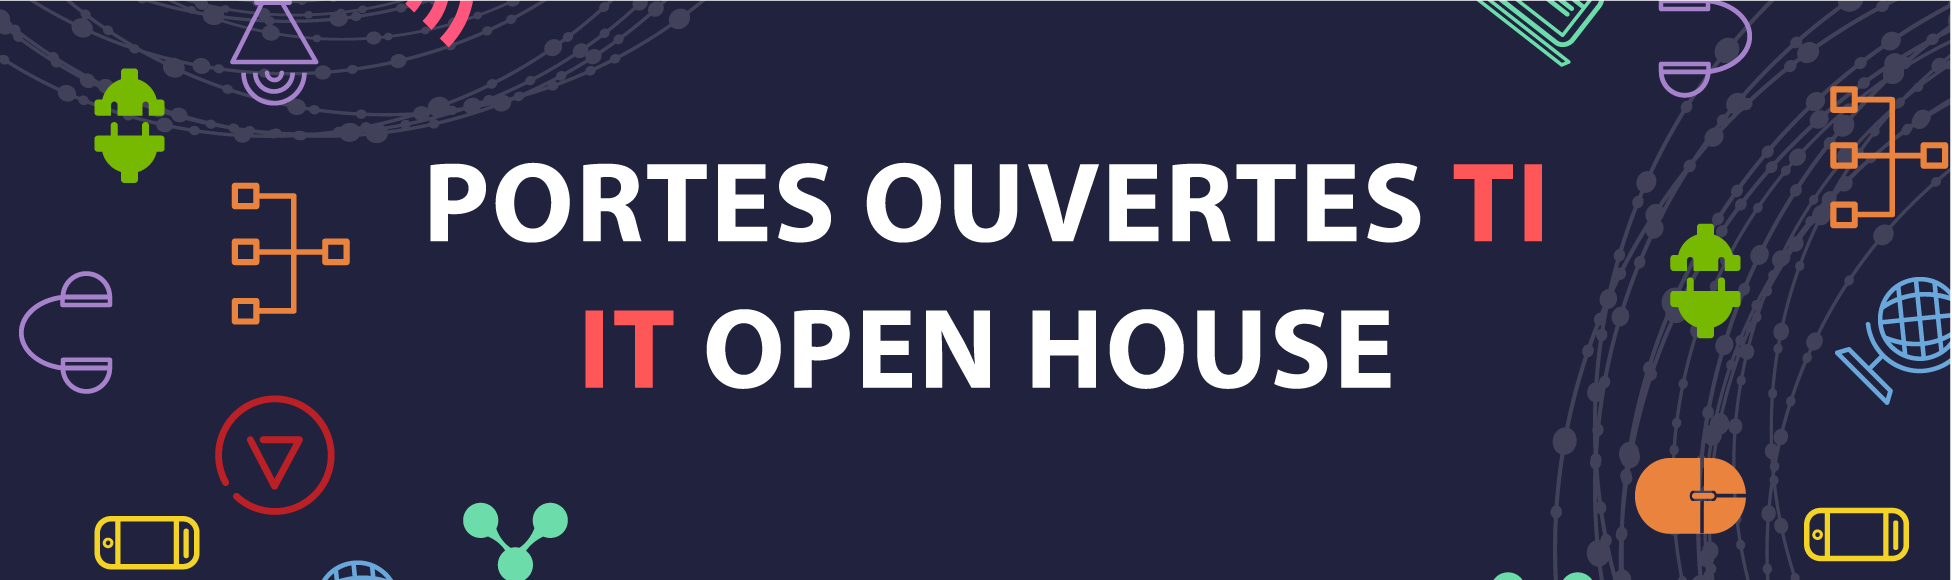 """Purple banner with colourful IT icons, text reads """"Portes ouvertes TI 